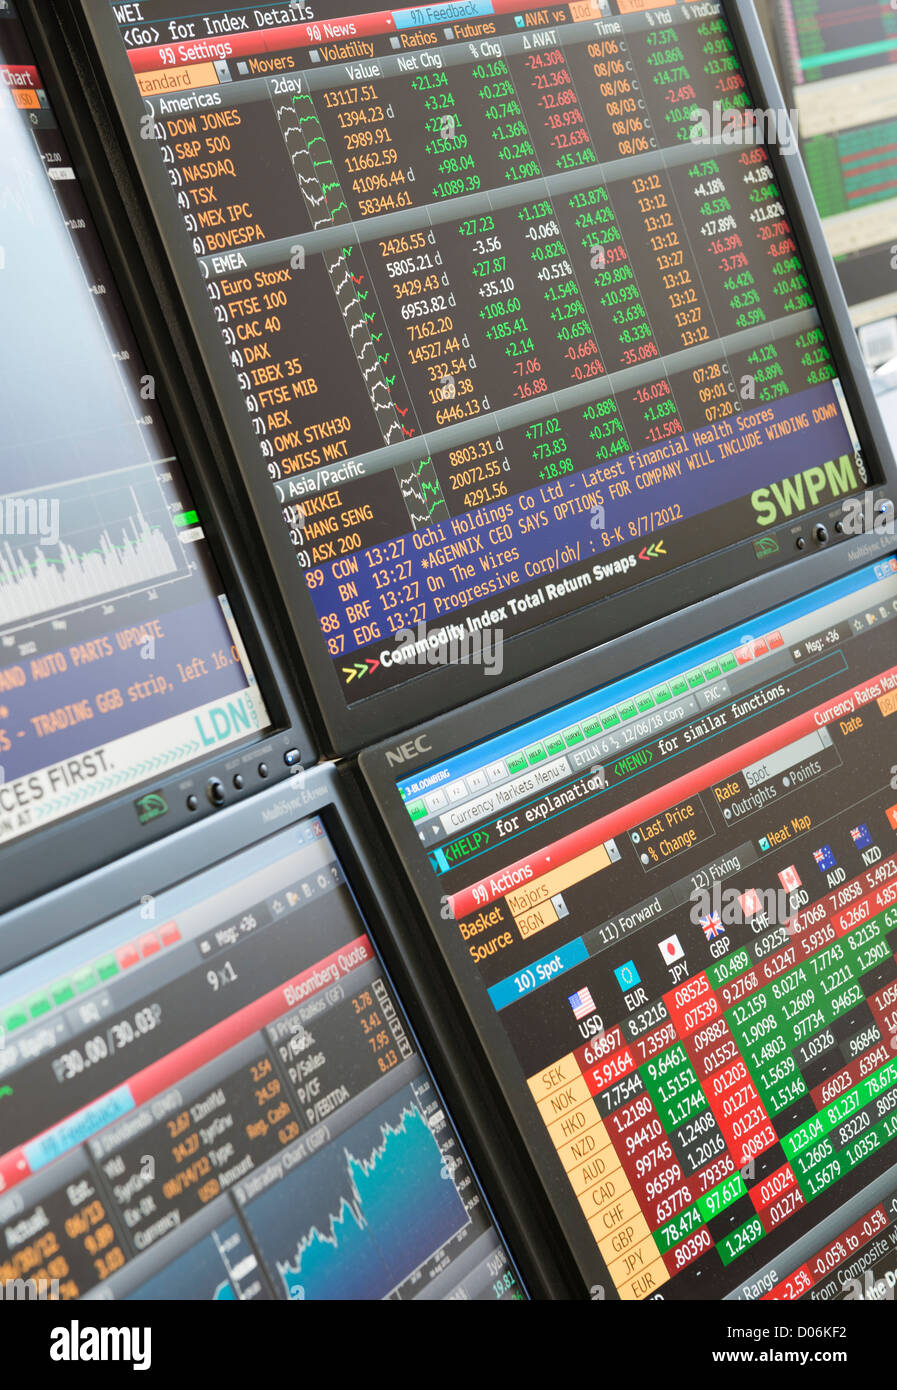 Stocks and shares trading monitor - Stock Image